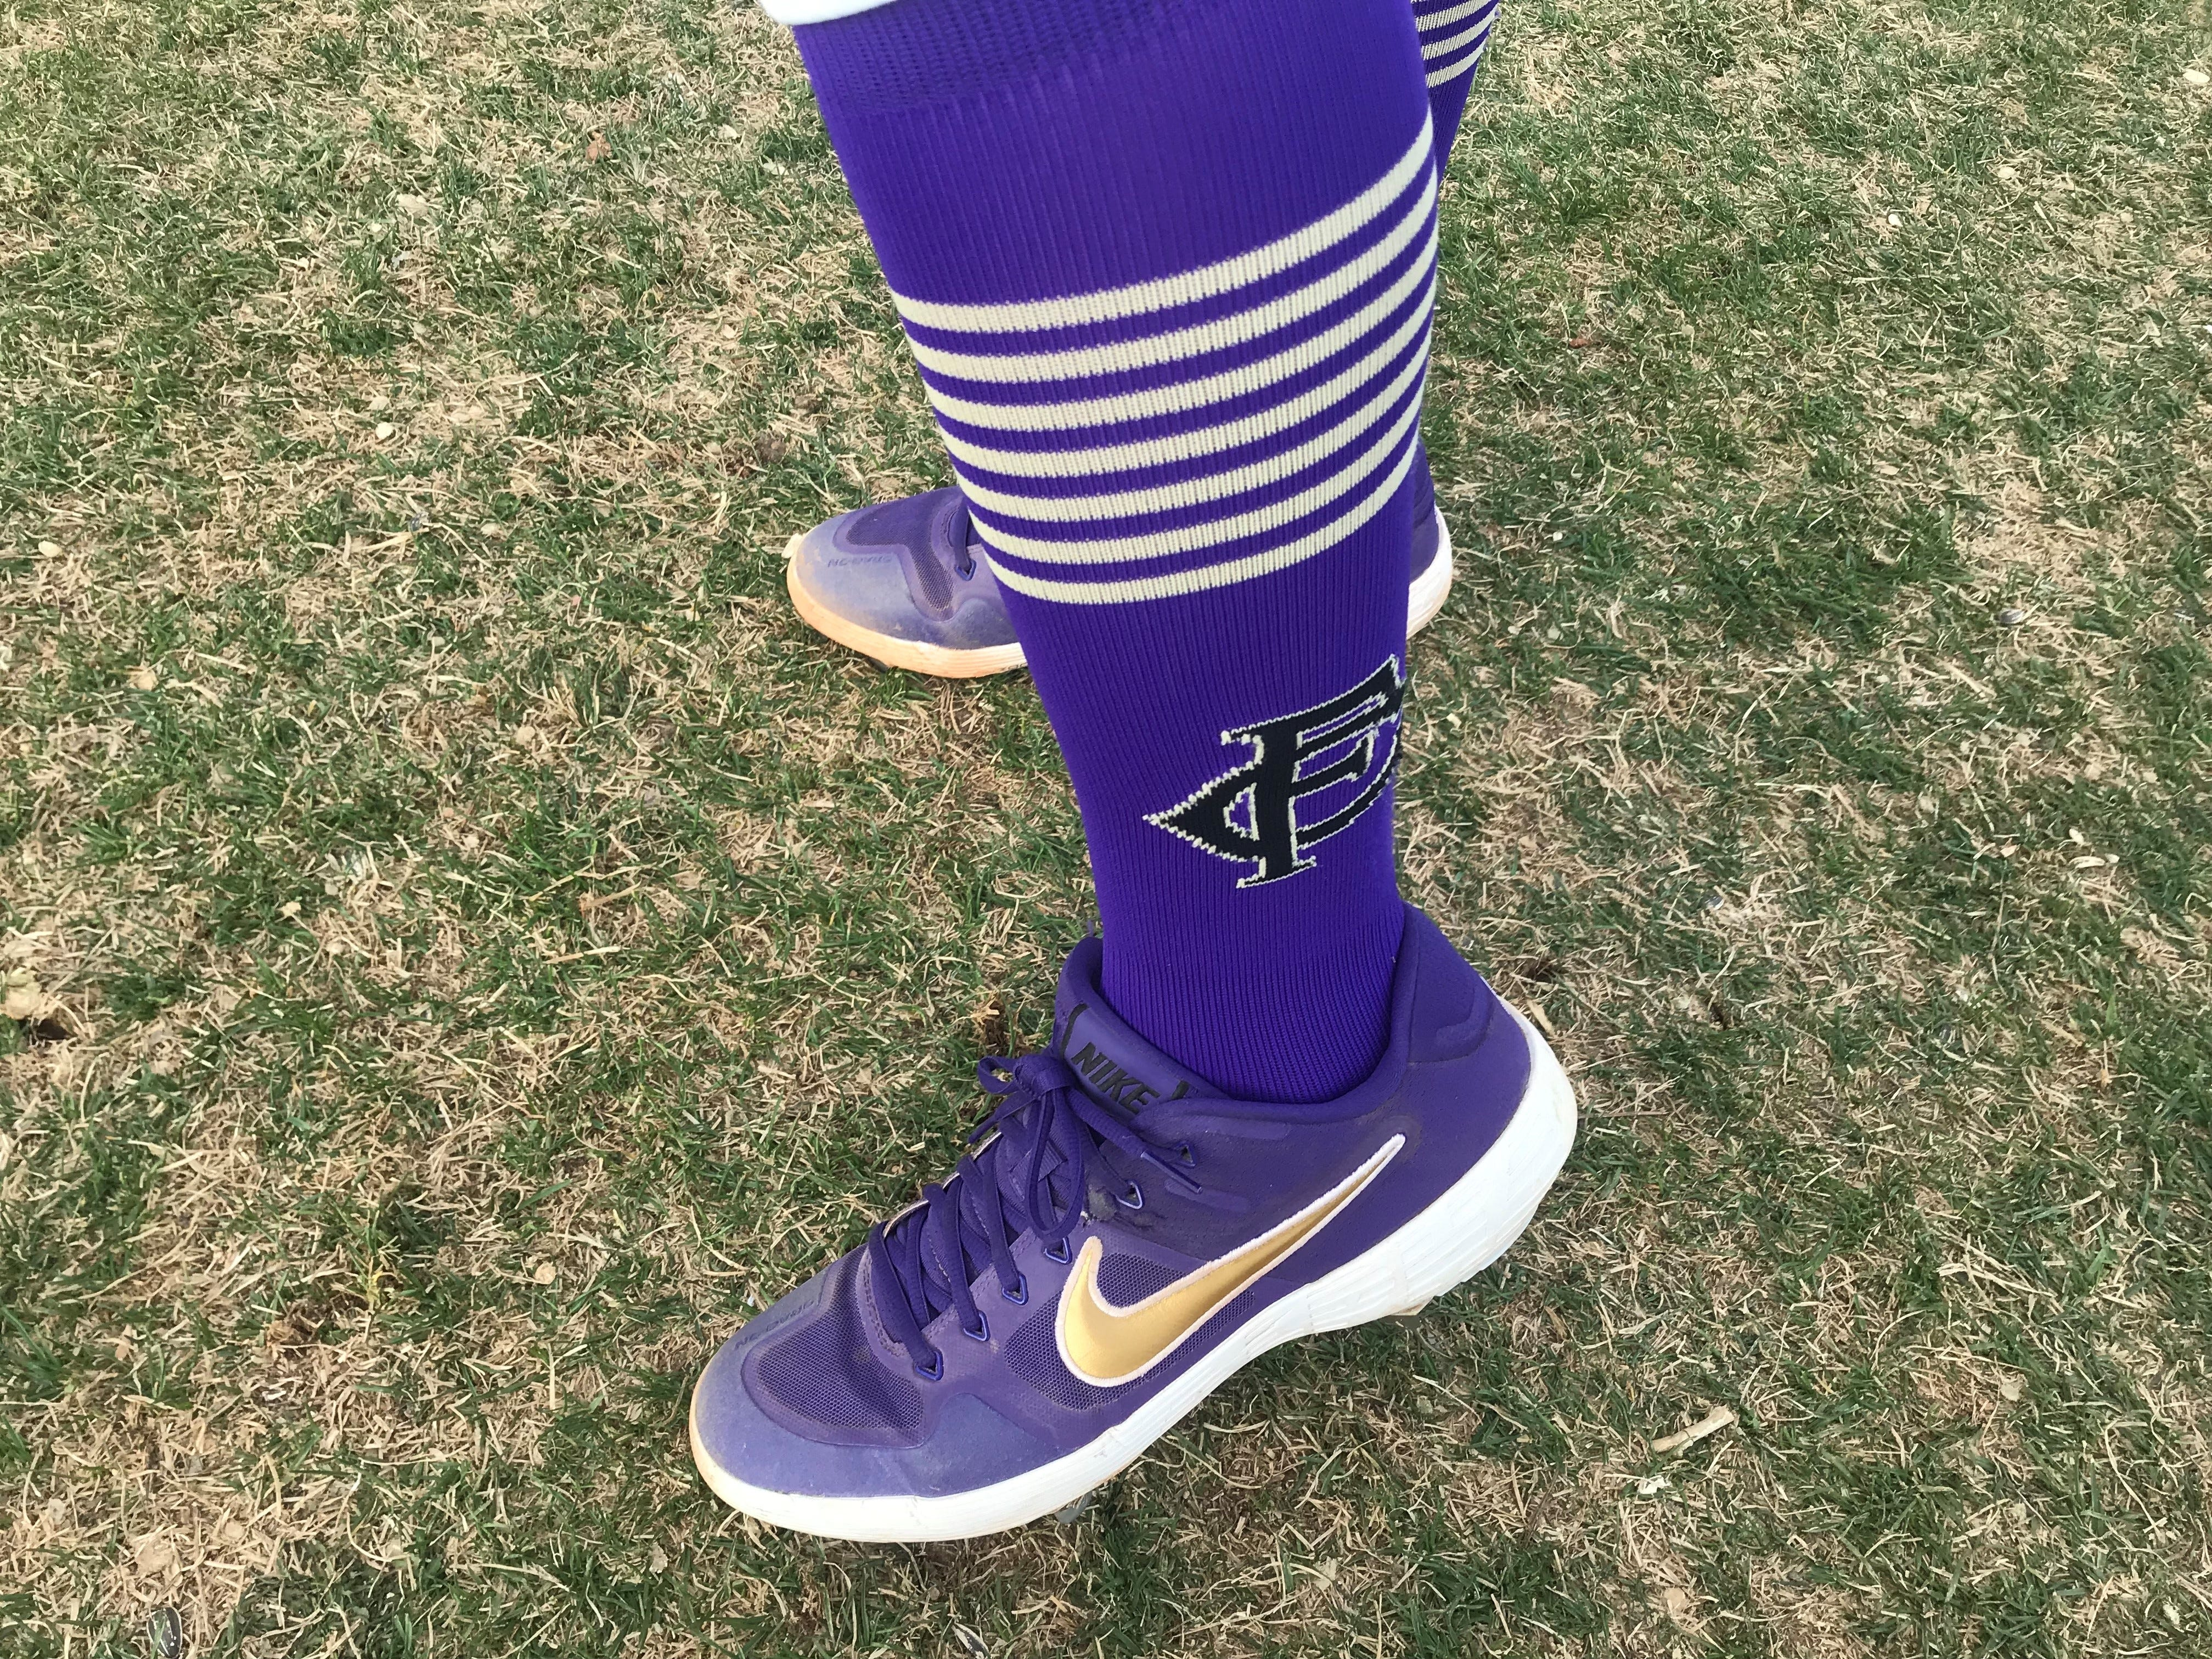 Fort Collins High School catcher Diego Aragon shows off the high socks worn by the whole Lambkins team plus the custom cleats many of the players wear.